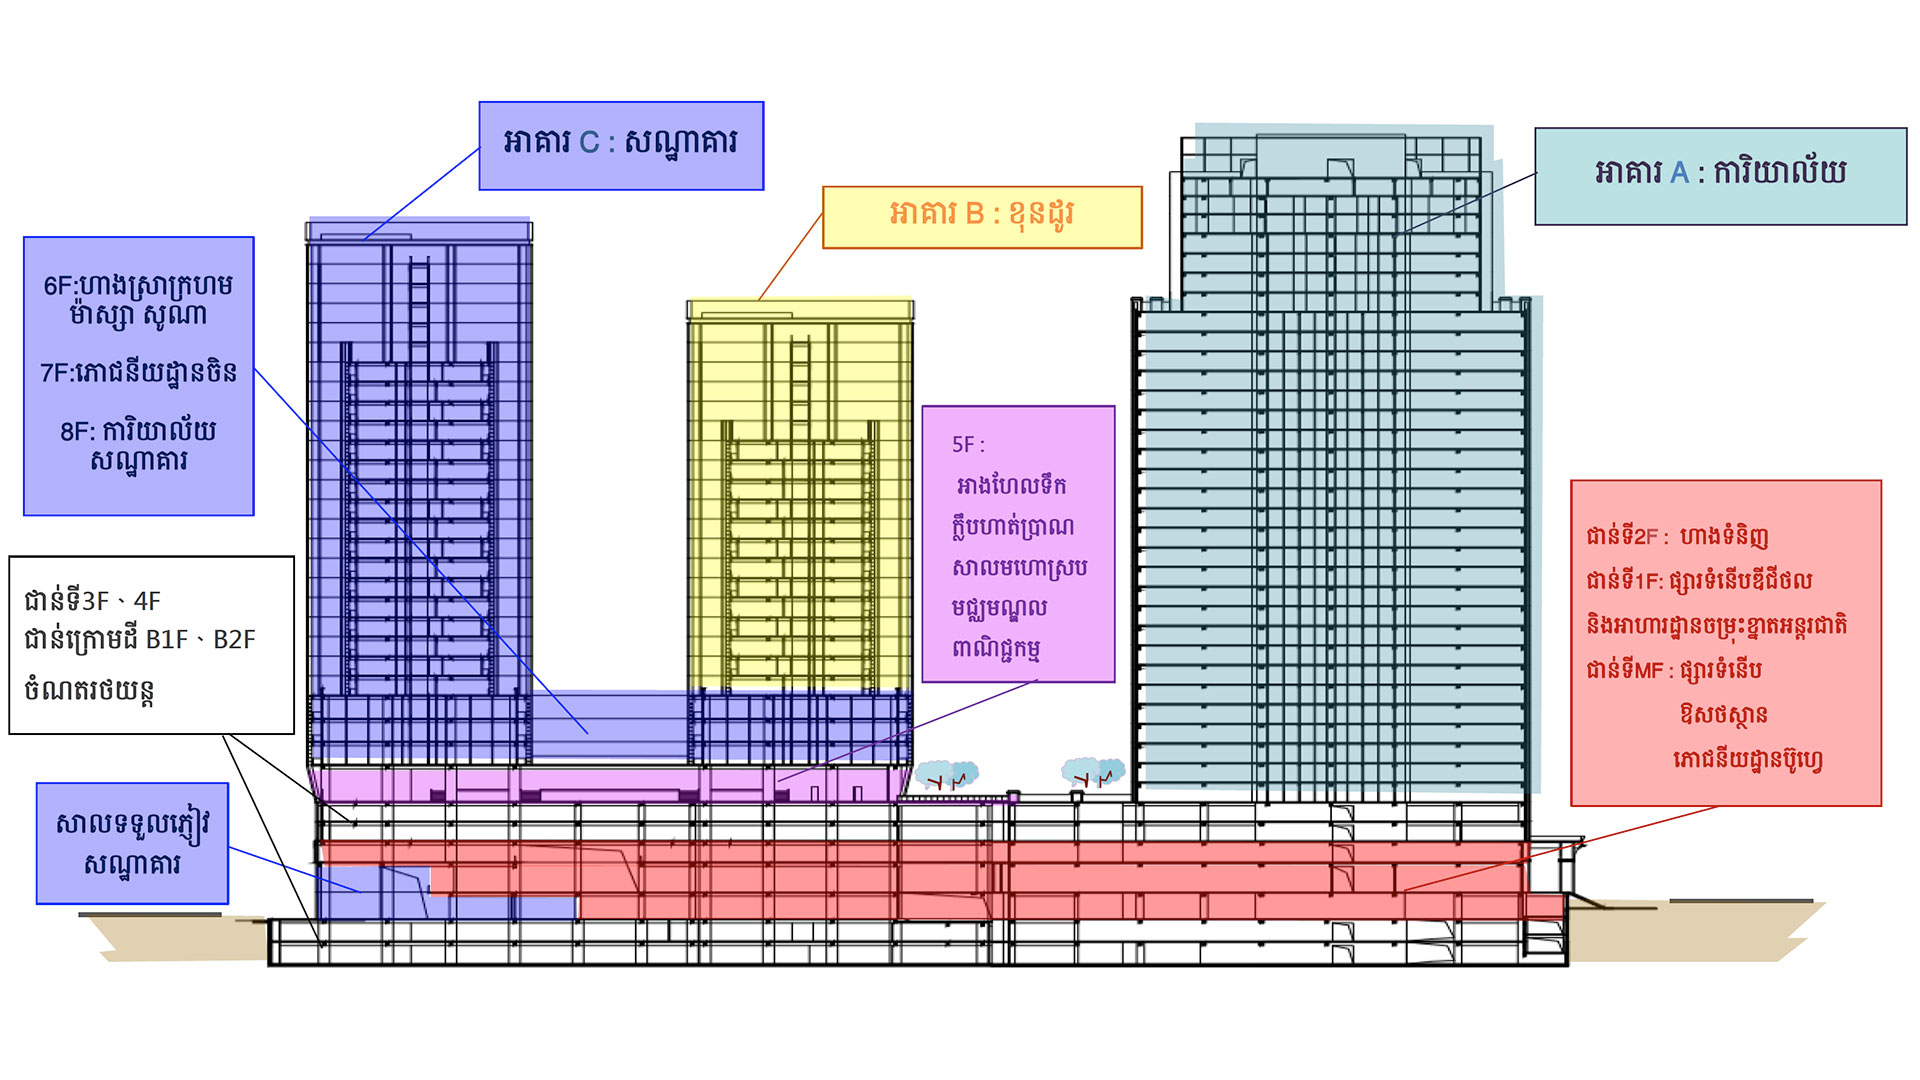 The Parkway Buildings Layout